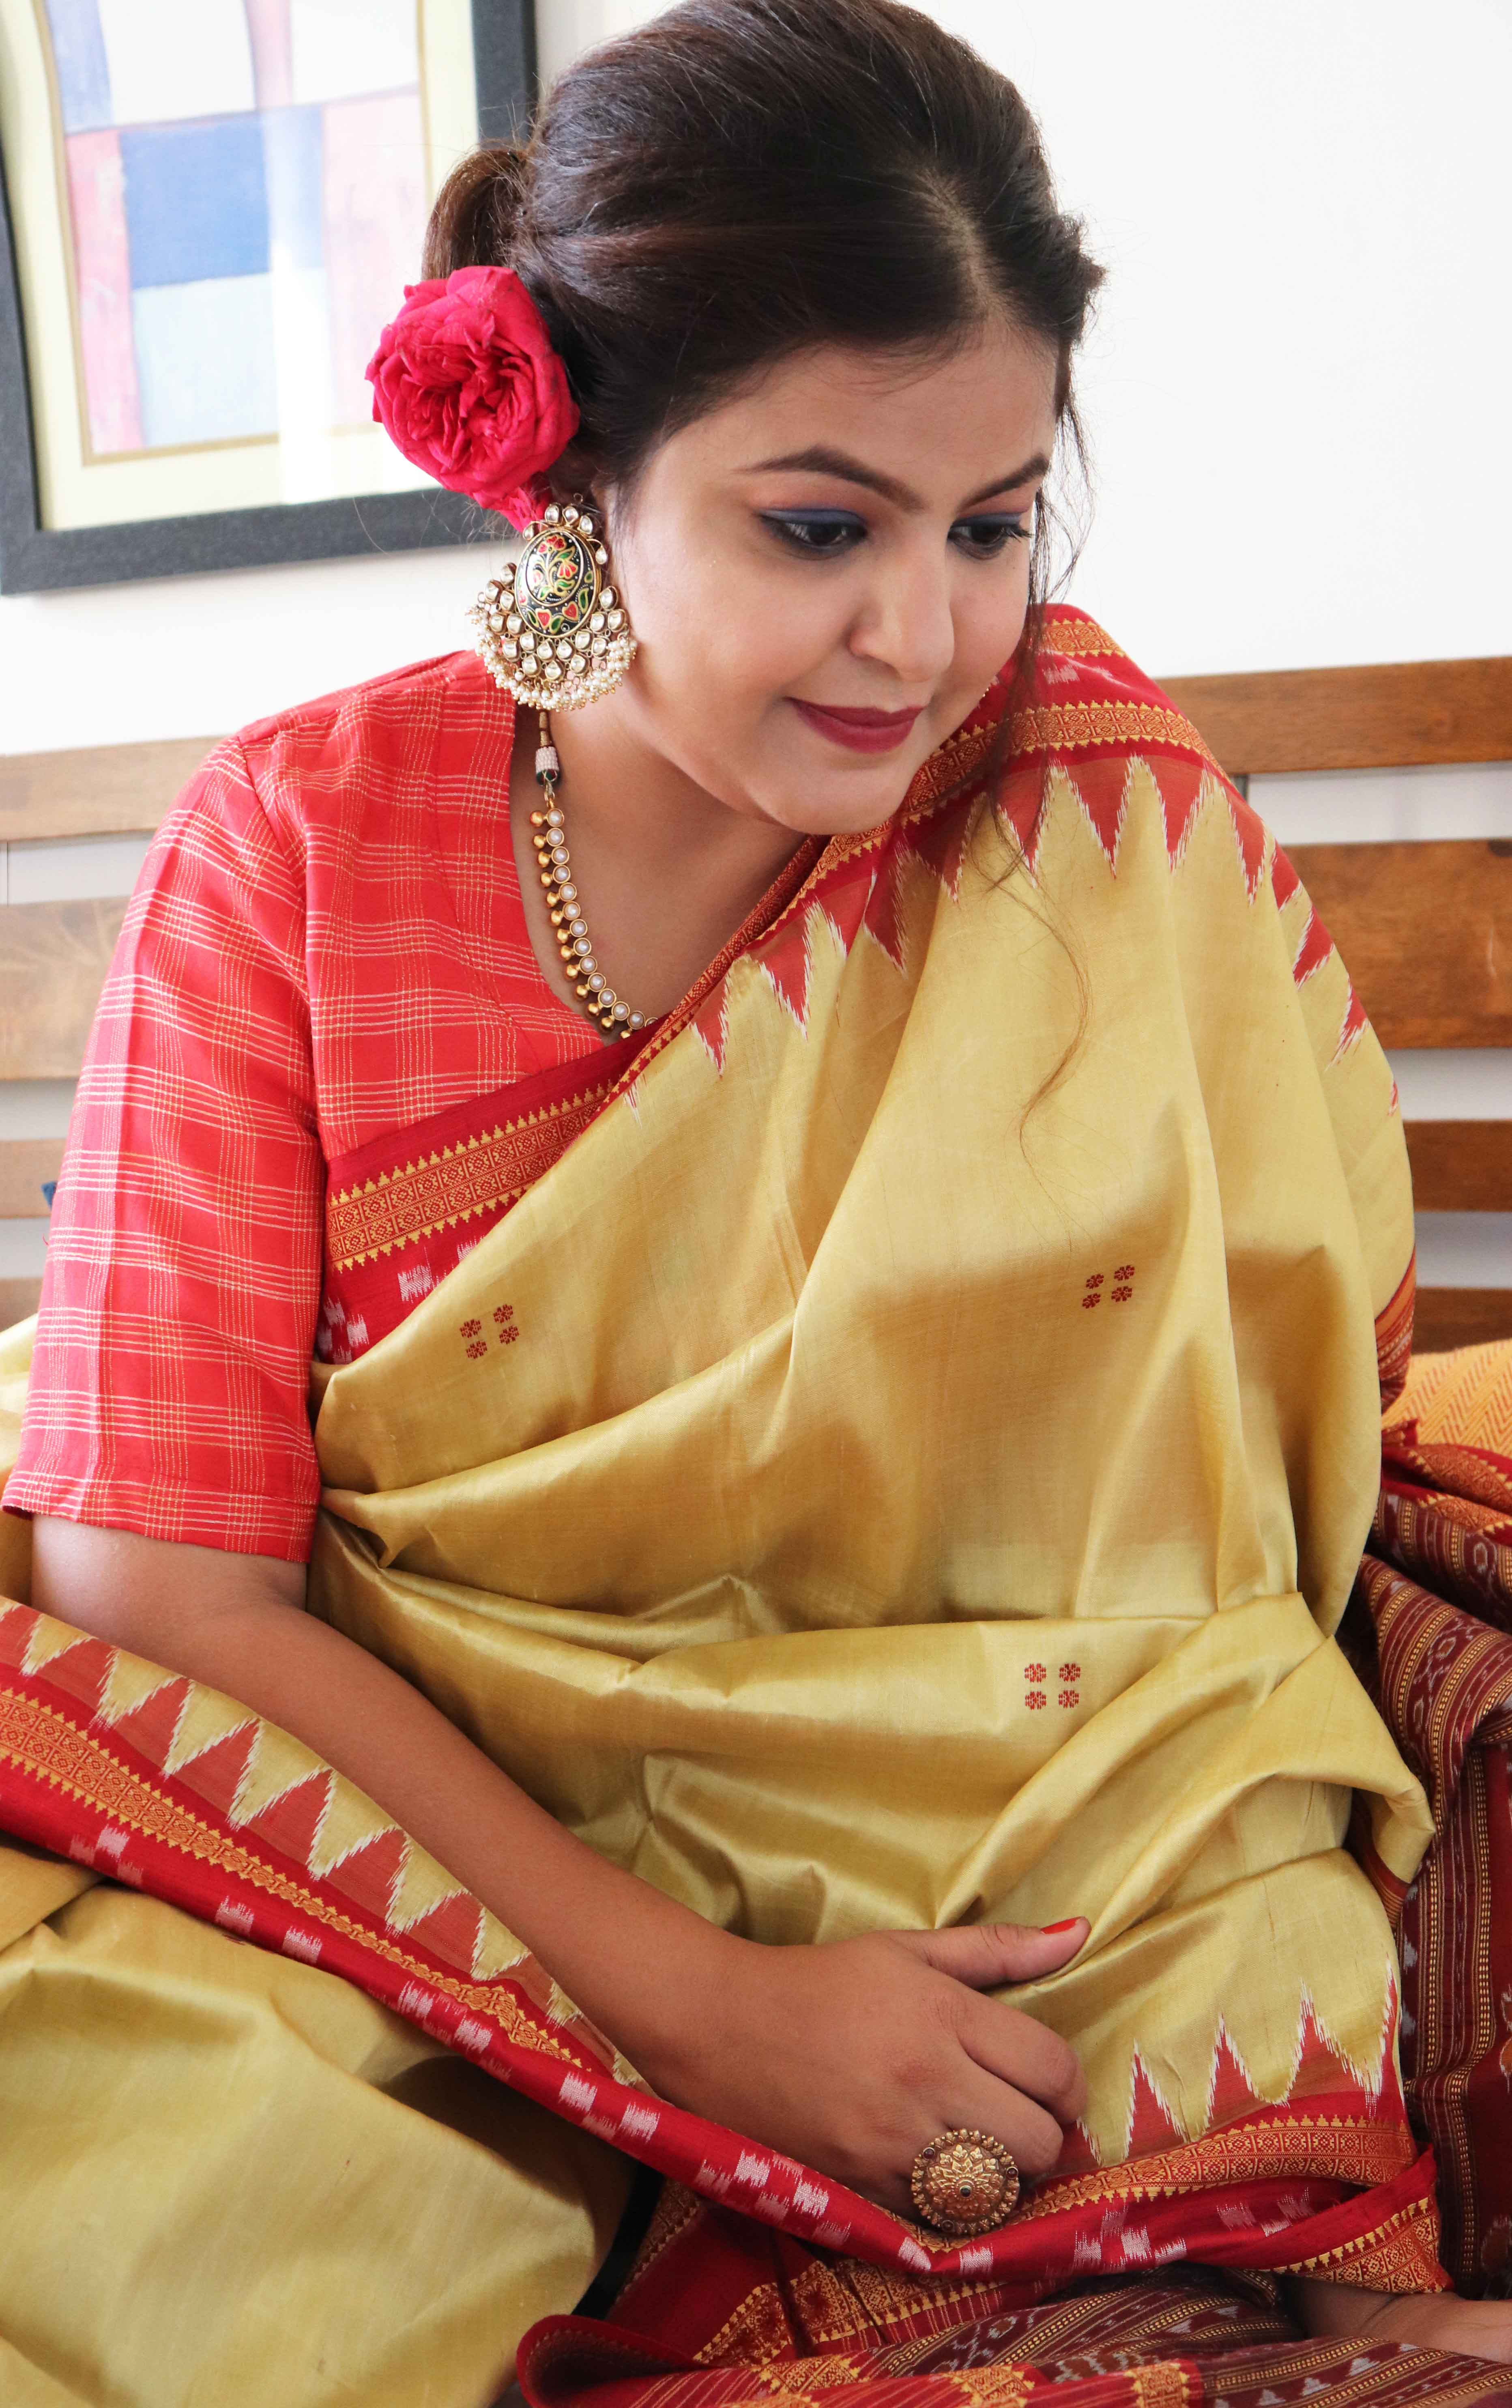 Ciceroni, fashion, lifestyle, shopping in Ahmedabad, your local shopping guide, Diwali look, festive fashion, saree, handloom, Orissa ikat